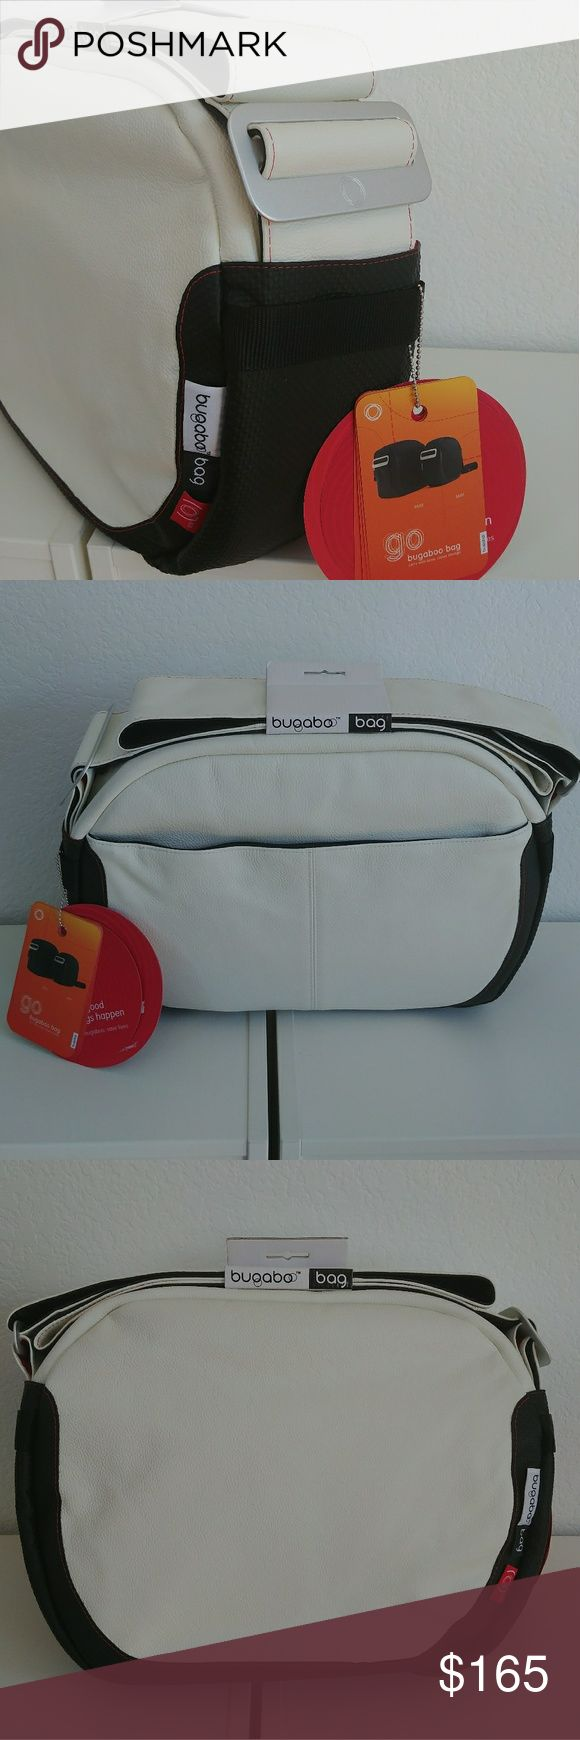 Bugaboo White Leather Diaper Bag Complete NWT Bugaboo white leather with red trim bag. Adjustable strap. Super stylish diaper bag and modern carry all for adults. All tags attached.  Complete with all accessories:  - Dust bag - Insulated food and bottle bags - Changing pad Bugaboo Bags